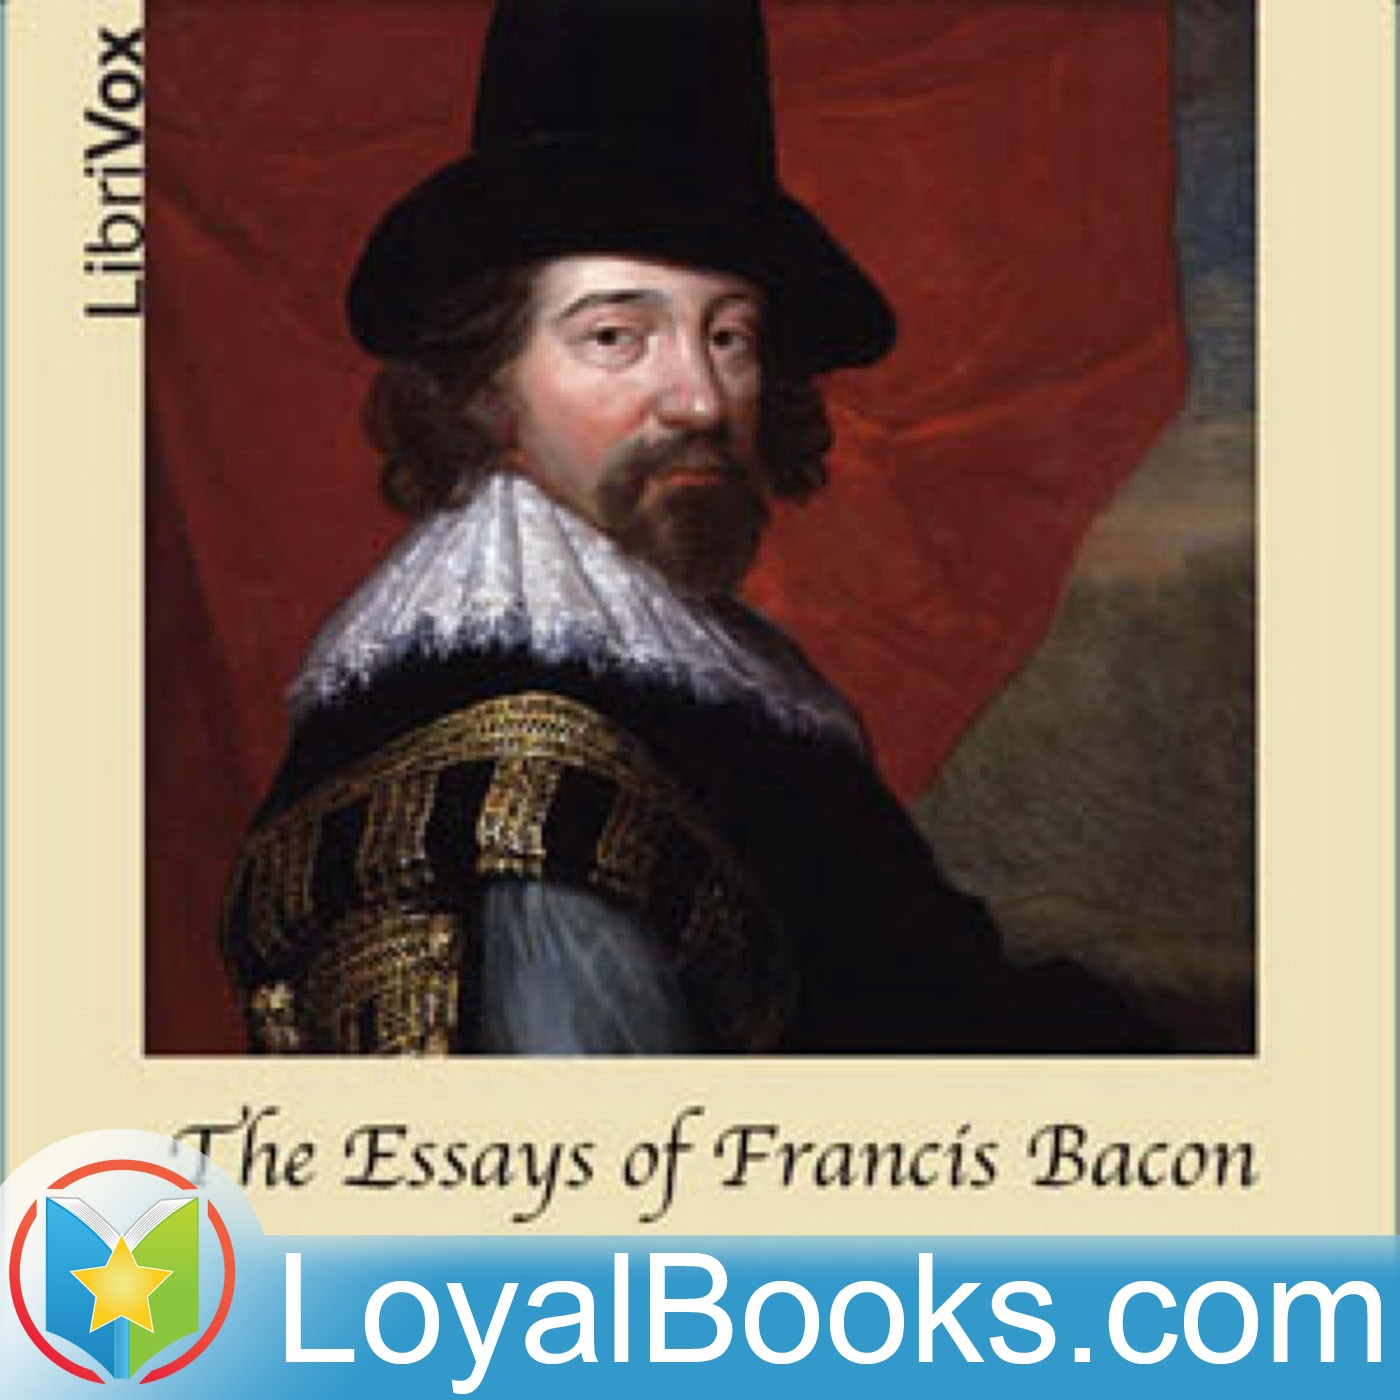 essay short nonfiction audiobooks ebooks for iphone ralph waldo emerson the essays of francis bacon by francis bacon